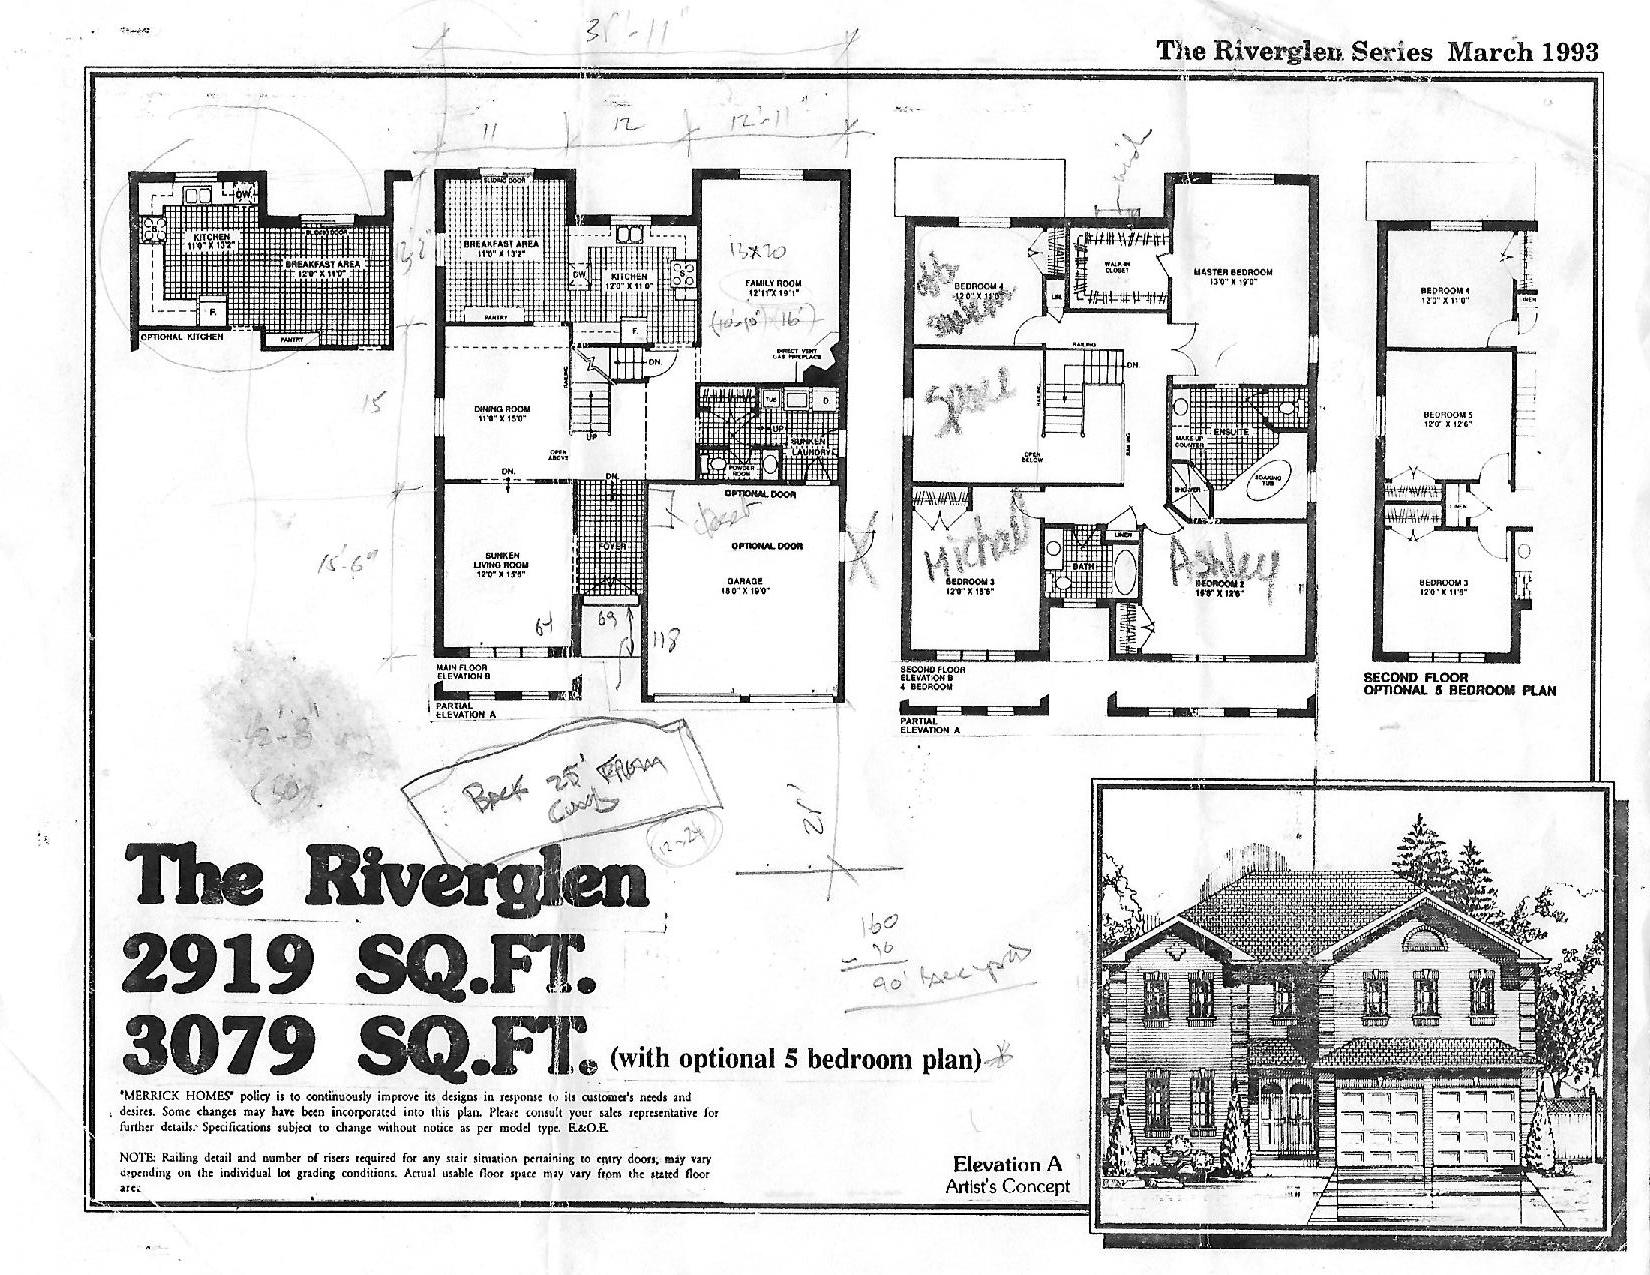 390 River Glen Site Plan and Floor Plan-page-002.jpg